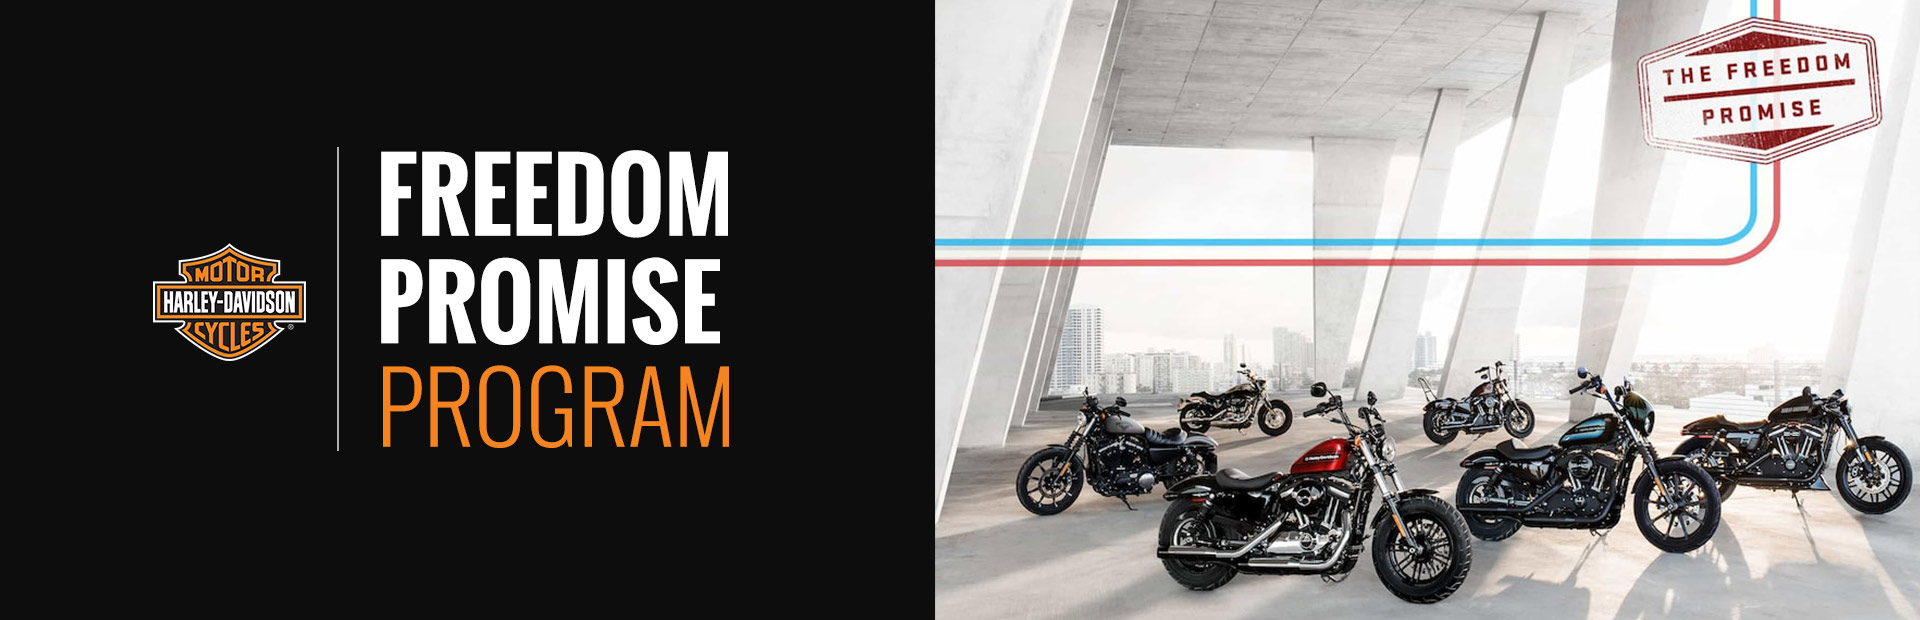 Harley-Davidson®: Freedom Promise Program